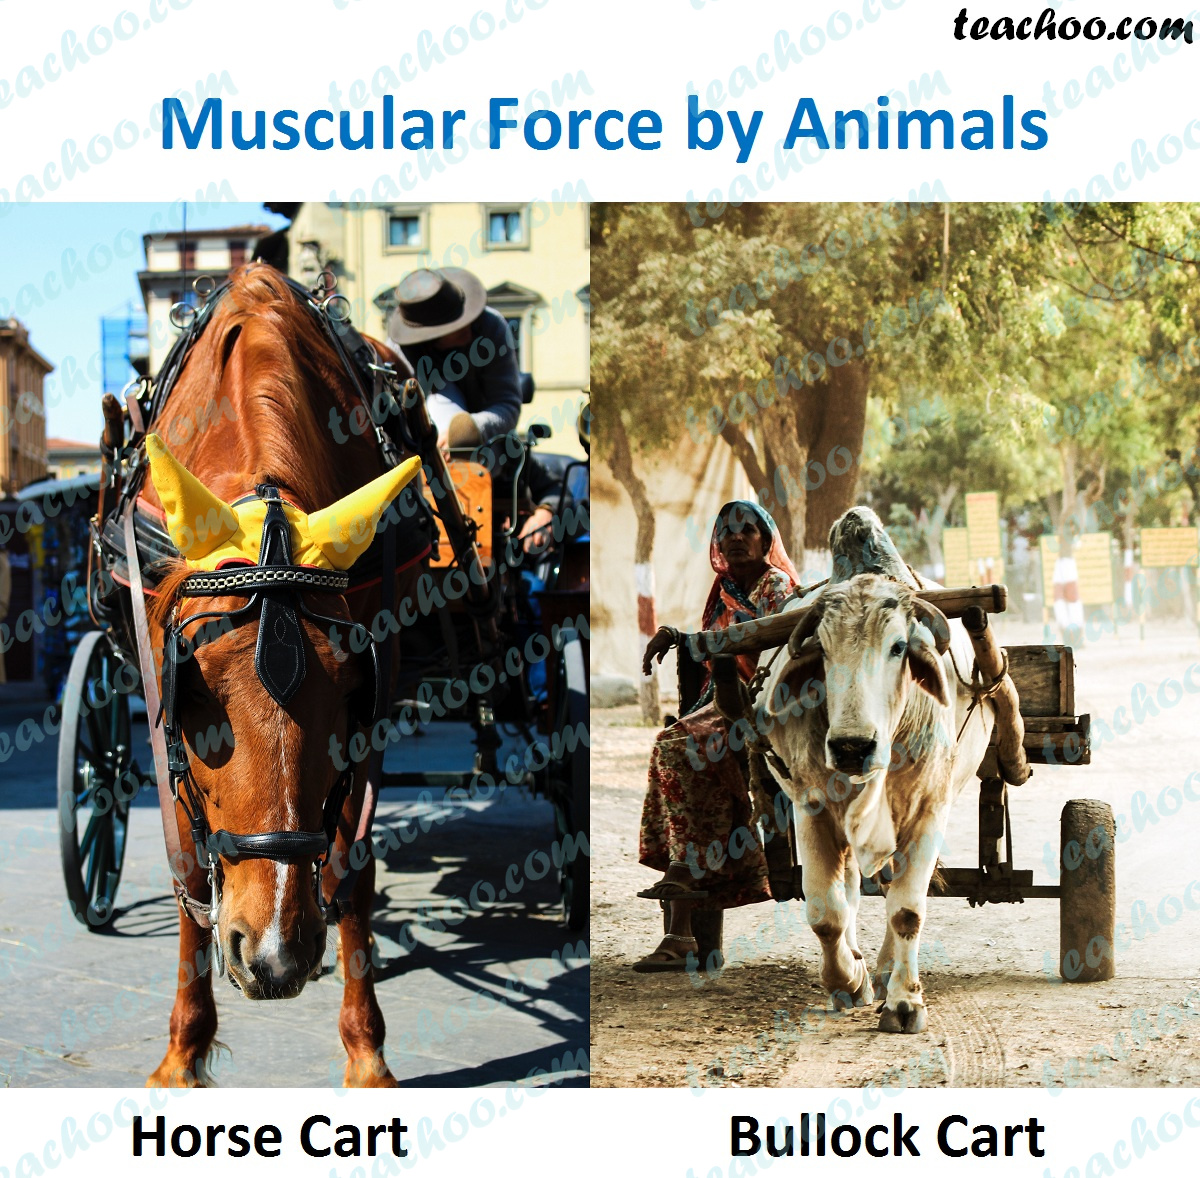 muscular-force-by-animals.jpg